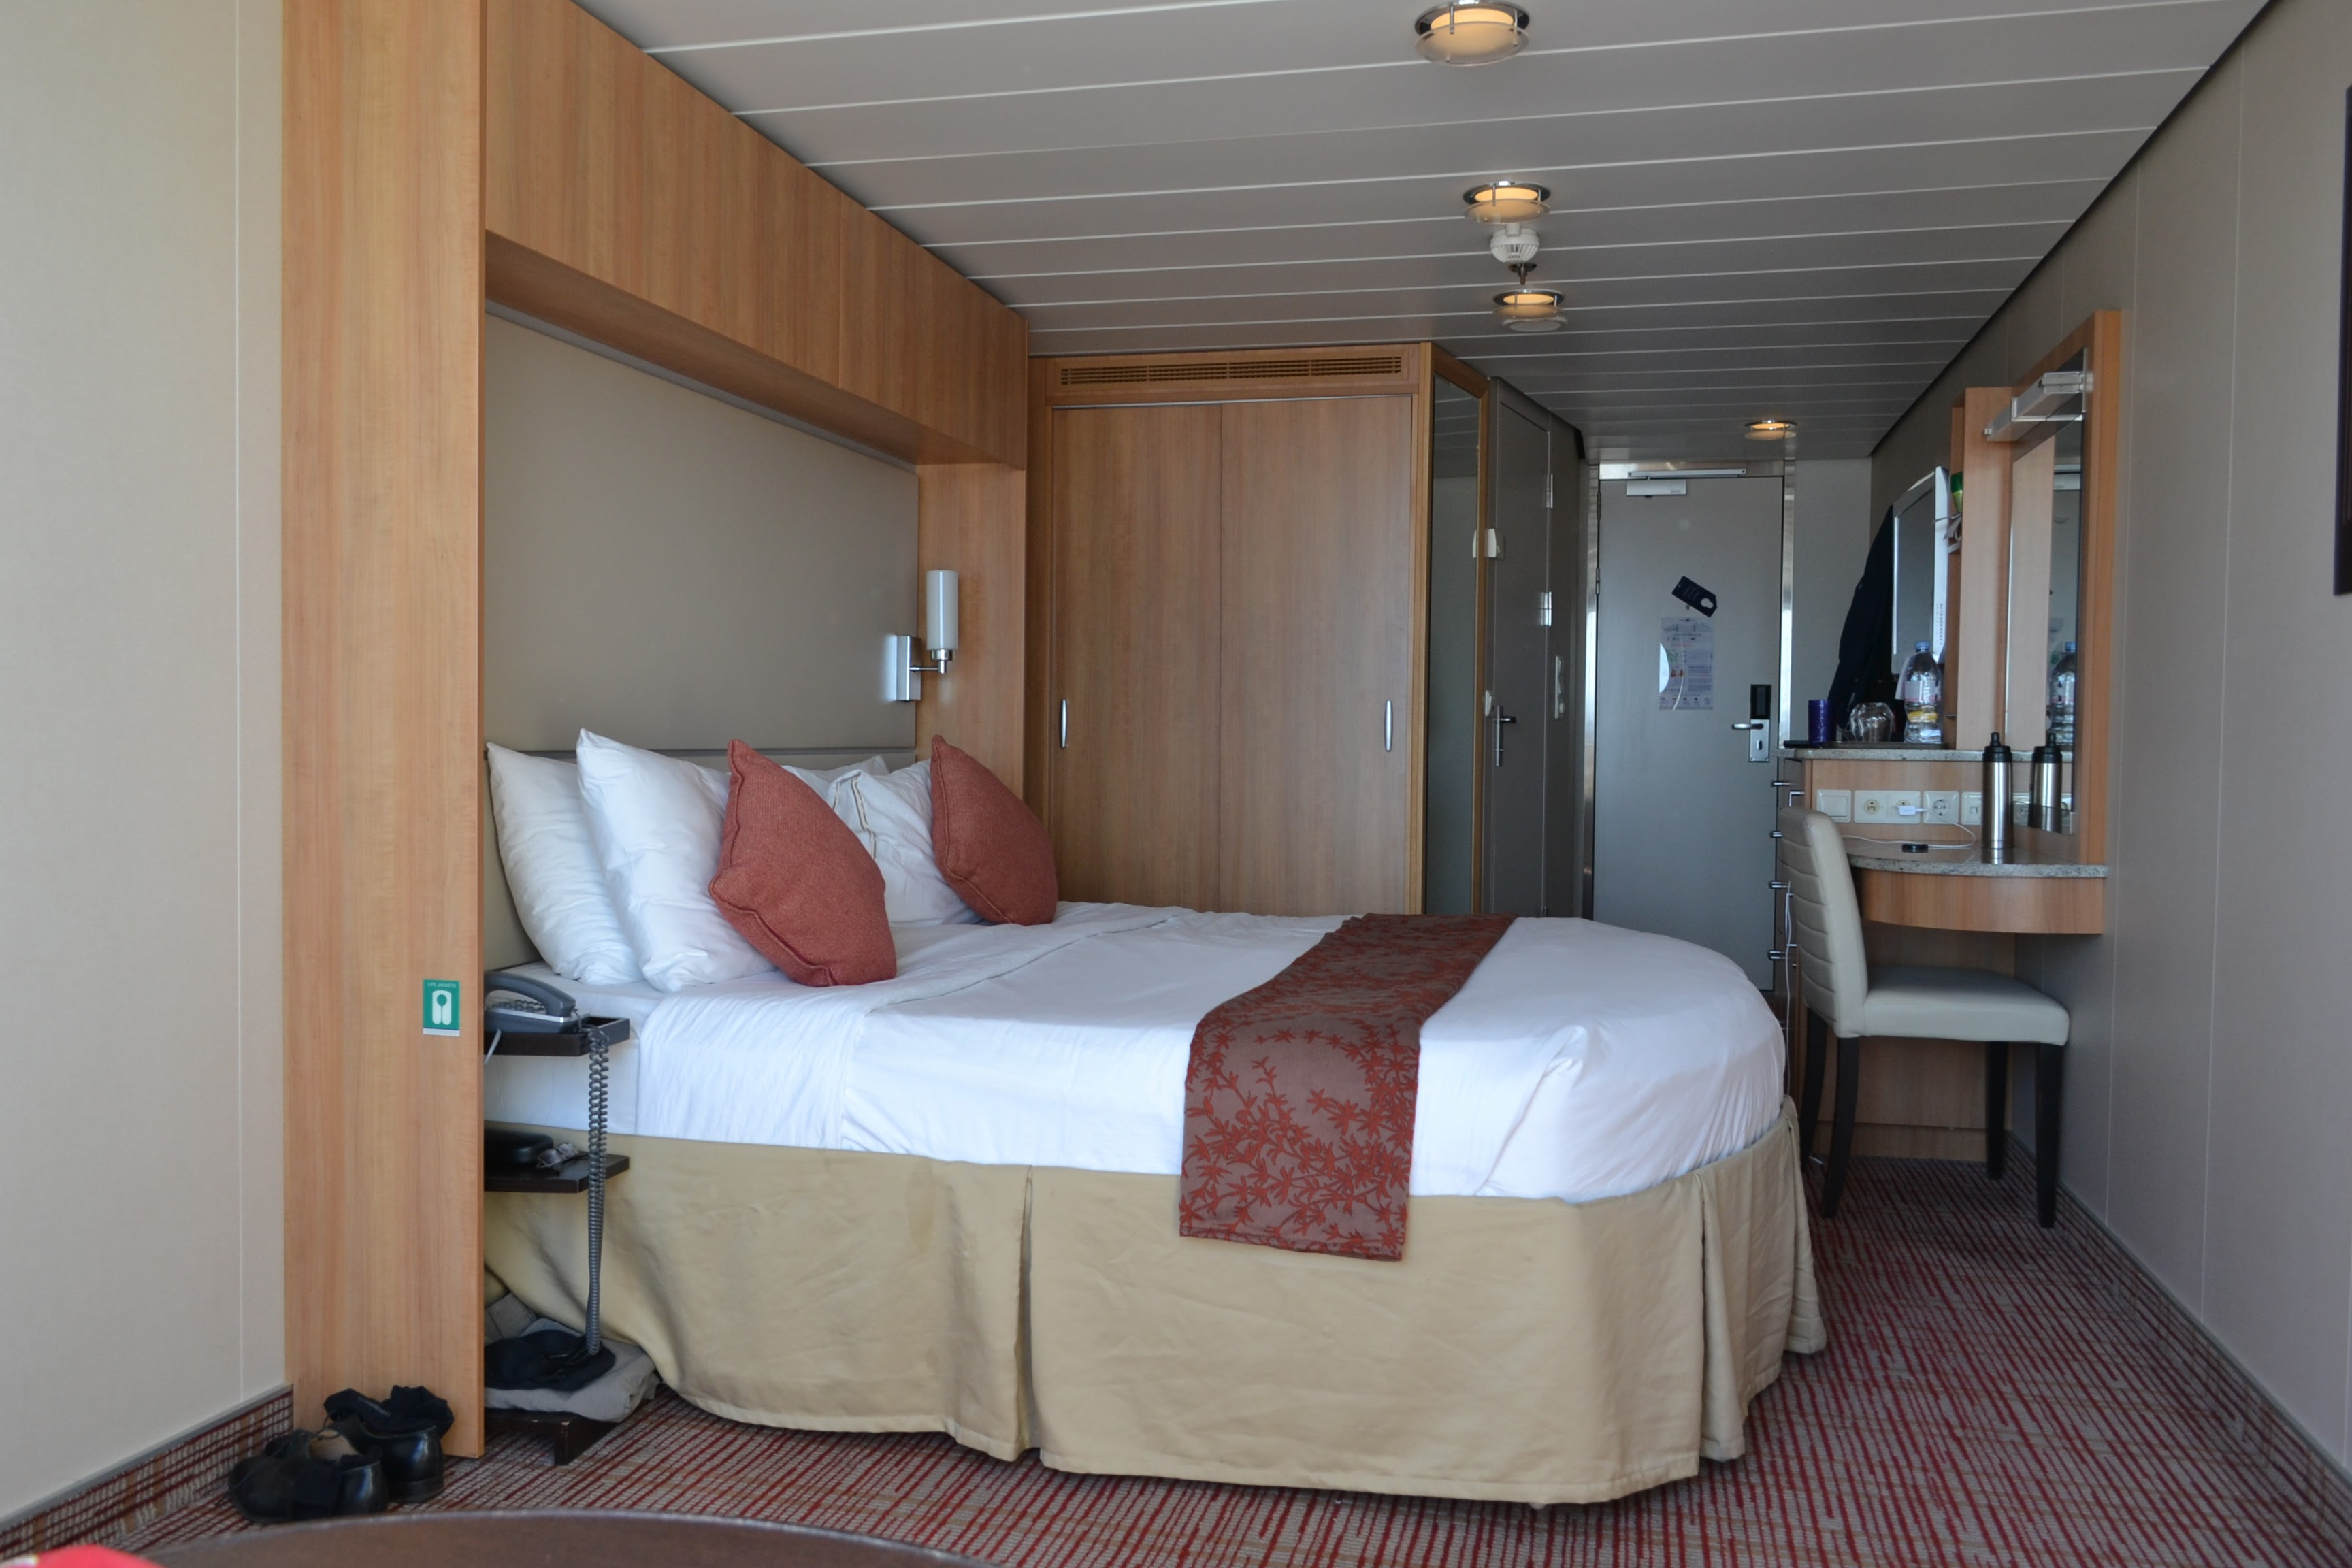 Celebrity Equinox Cruise Review For Cabin 7103